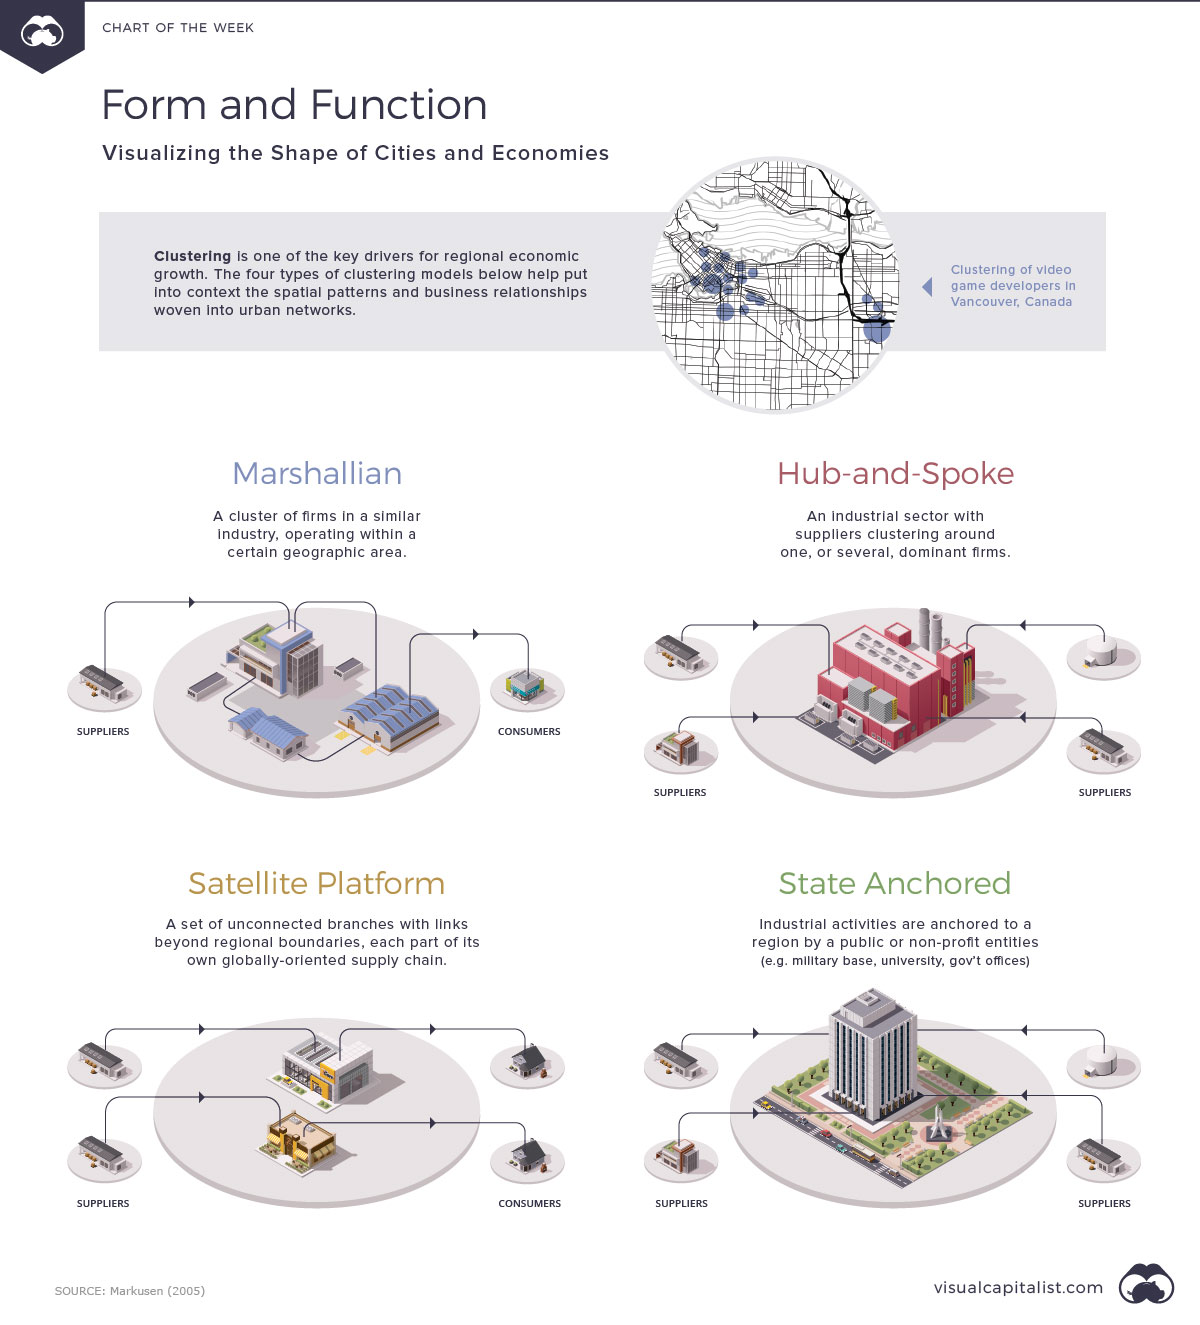 Form and Function: Visualizing the Shape of Cities